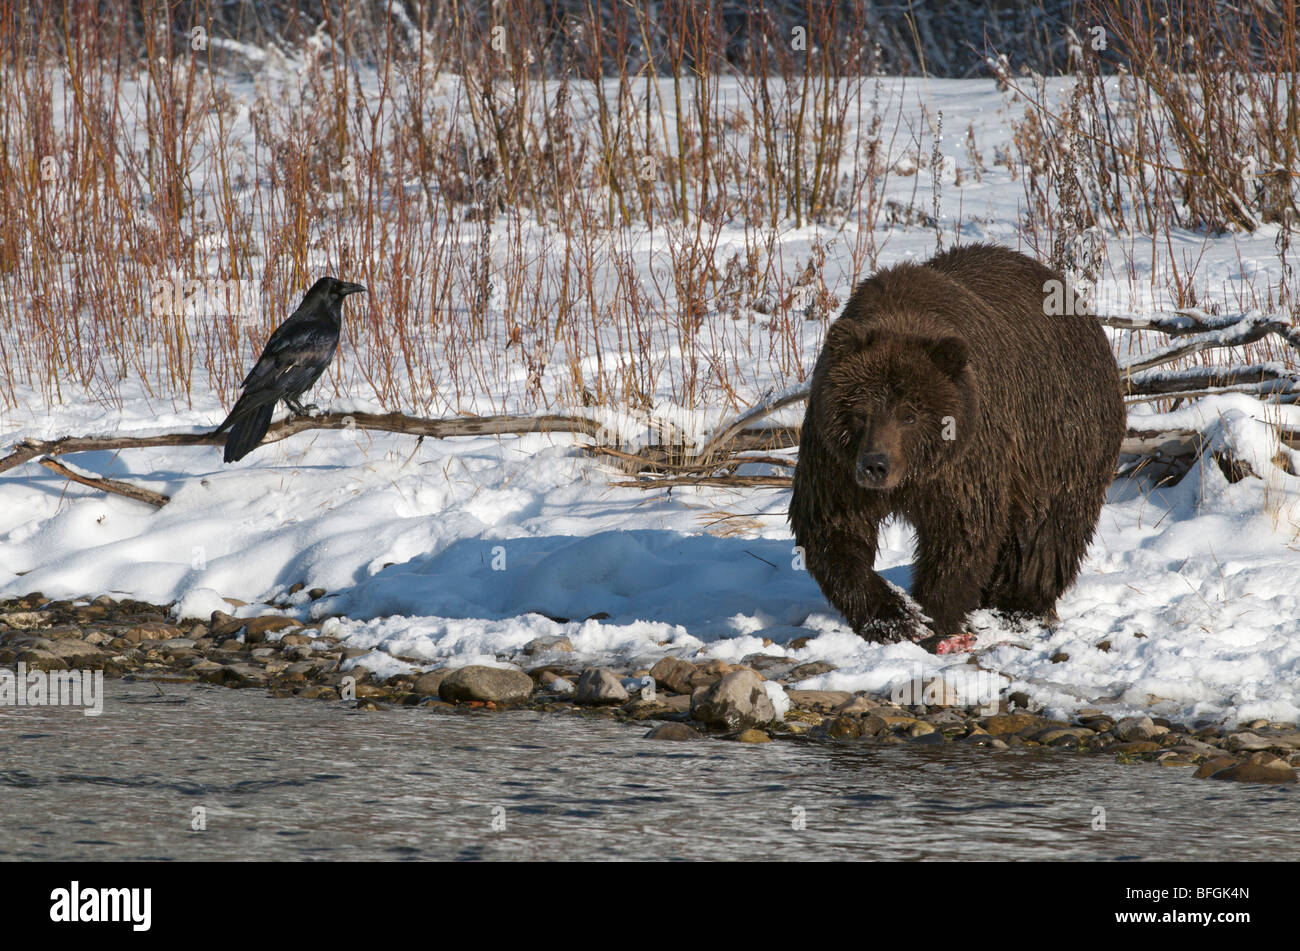 Grizzly Bear with Raven (Ursus arctos) along Fishing Branch River, Ni'iinlii Njik Ecological Reserve, Yukon - Stock Image